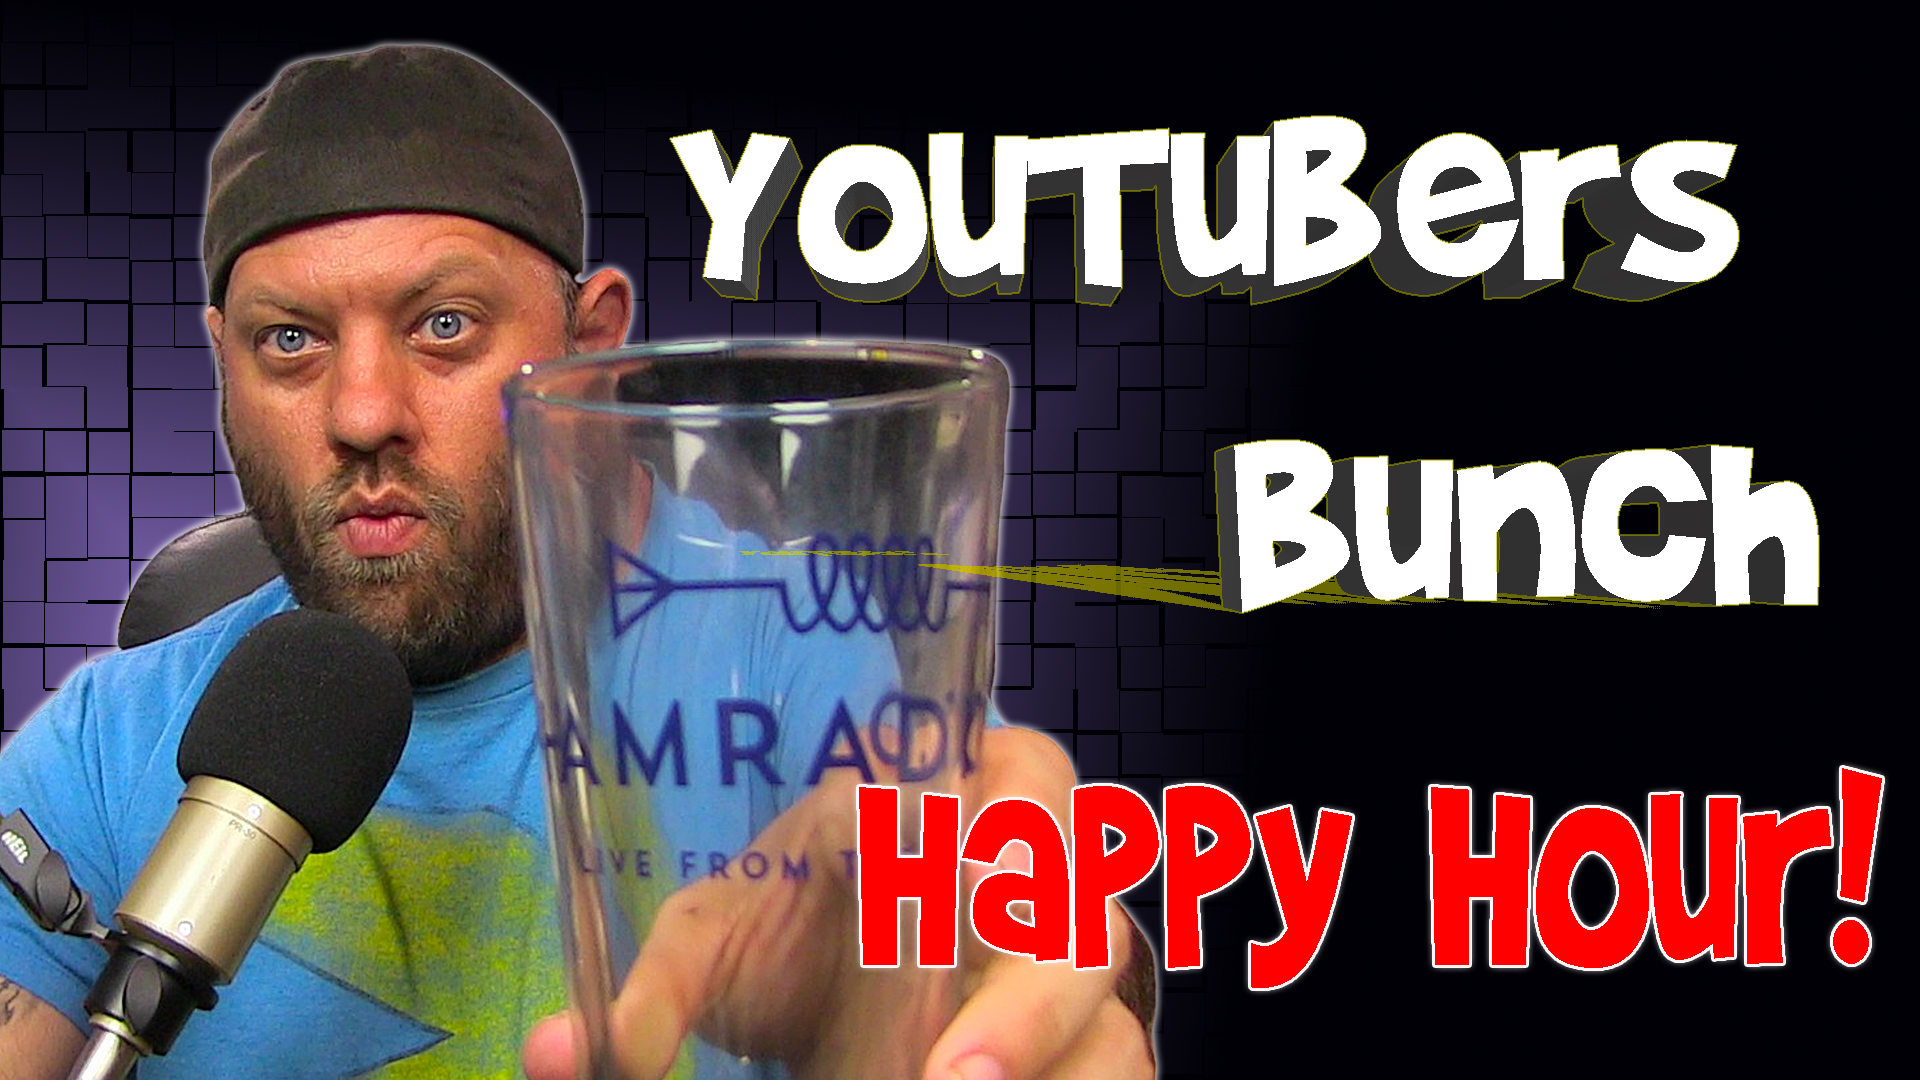 Episode 552: Ham Radio Happy Hour for February 2021! – We Should Be at HAMCATION Right Now!